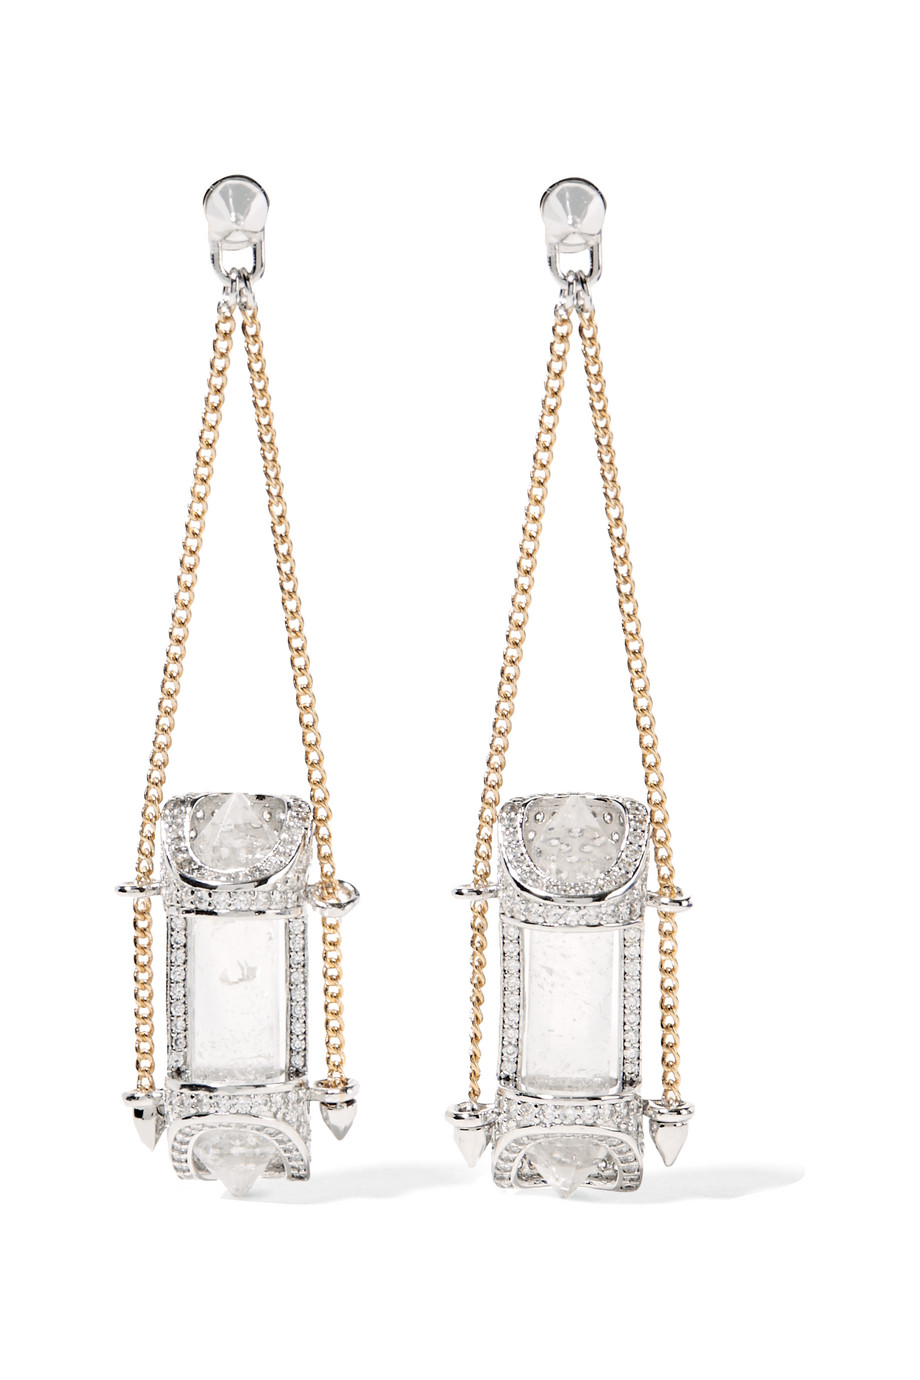 Eddie Borgo Sibyl Silver and Gold-Plated Crystal Earrings